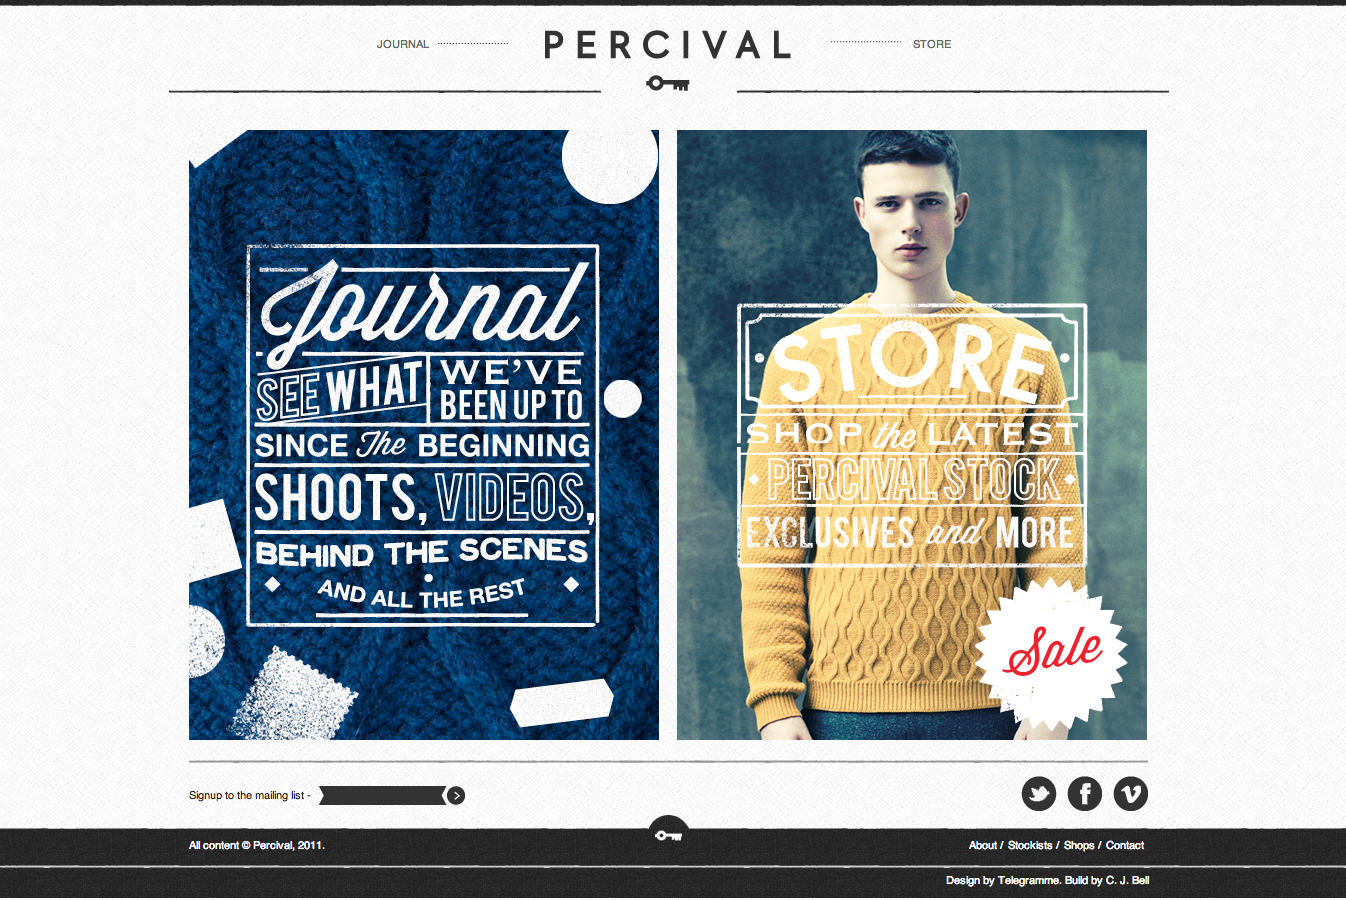 Percival clothing stockists